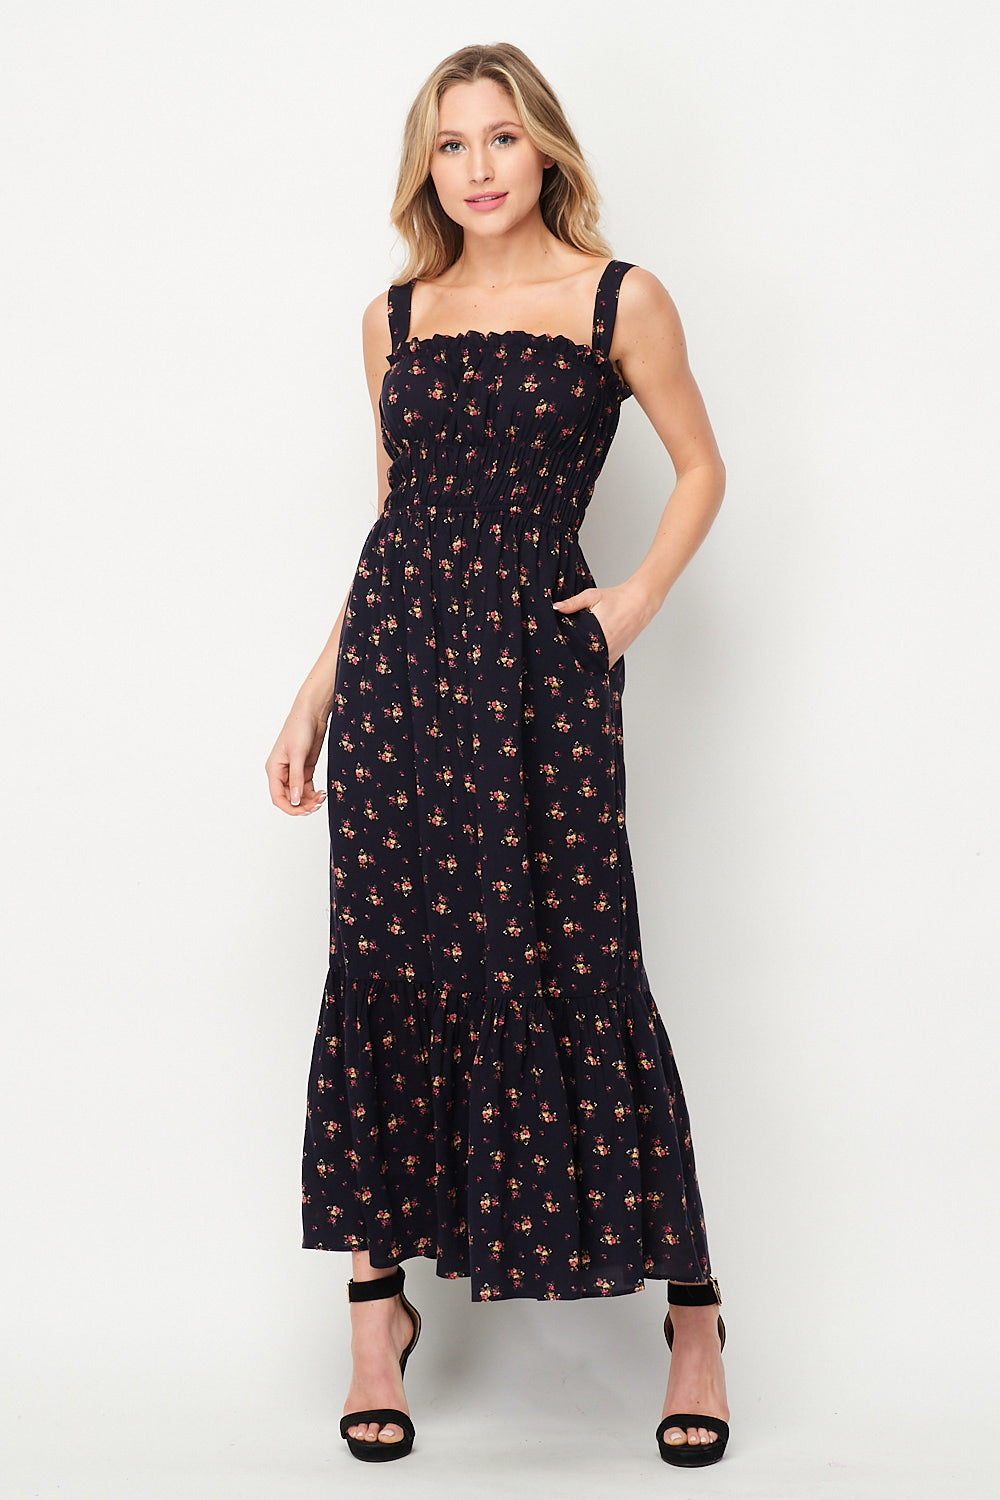 Spring Awakening Maxi Dress w/ Pocket | Navy Floral - Velvet Torch